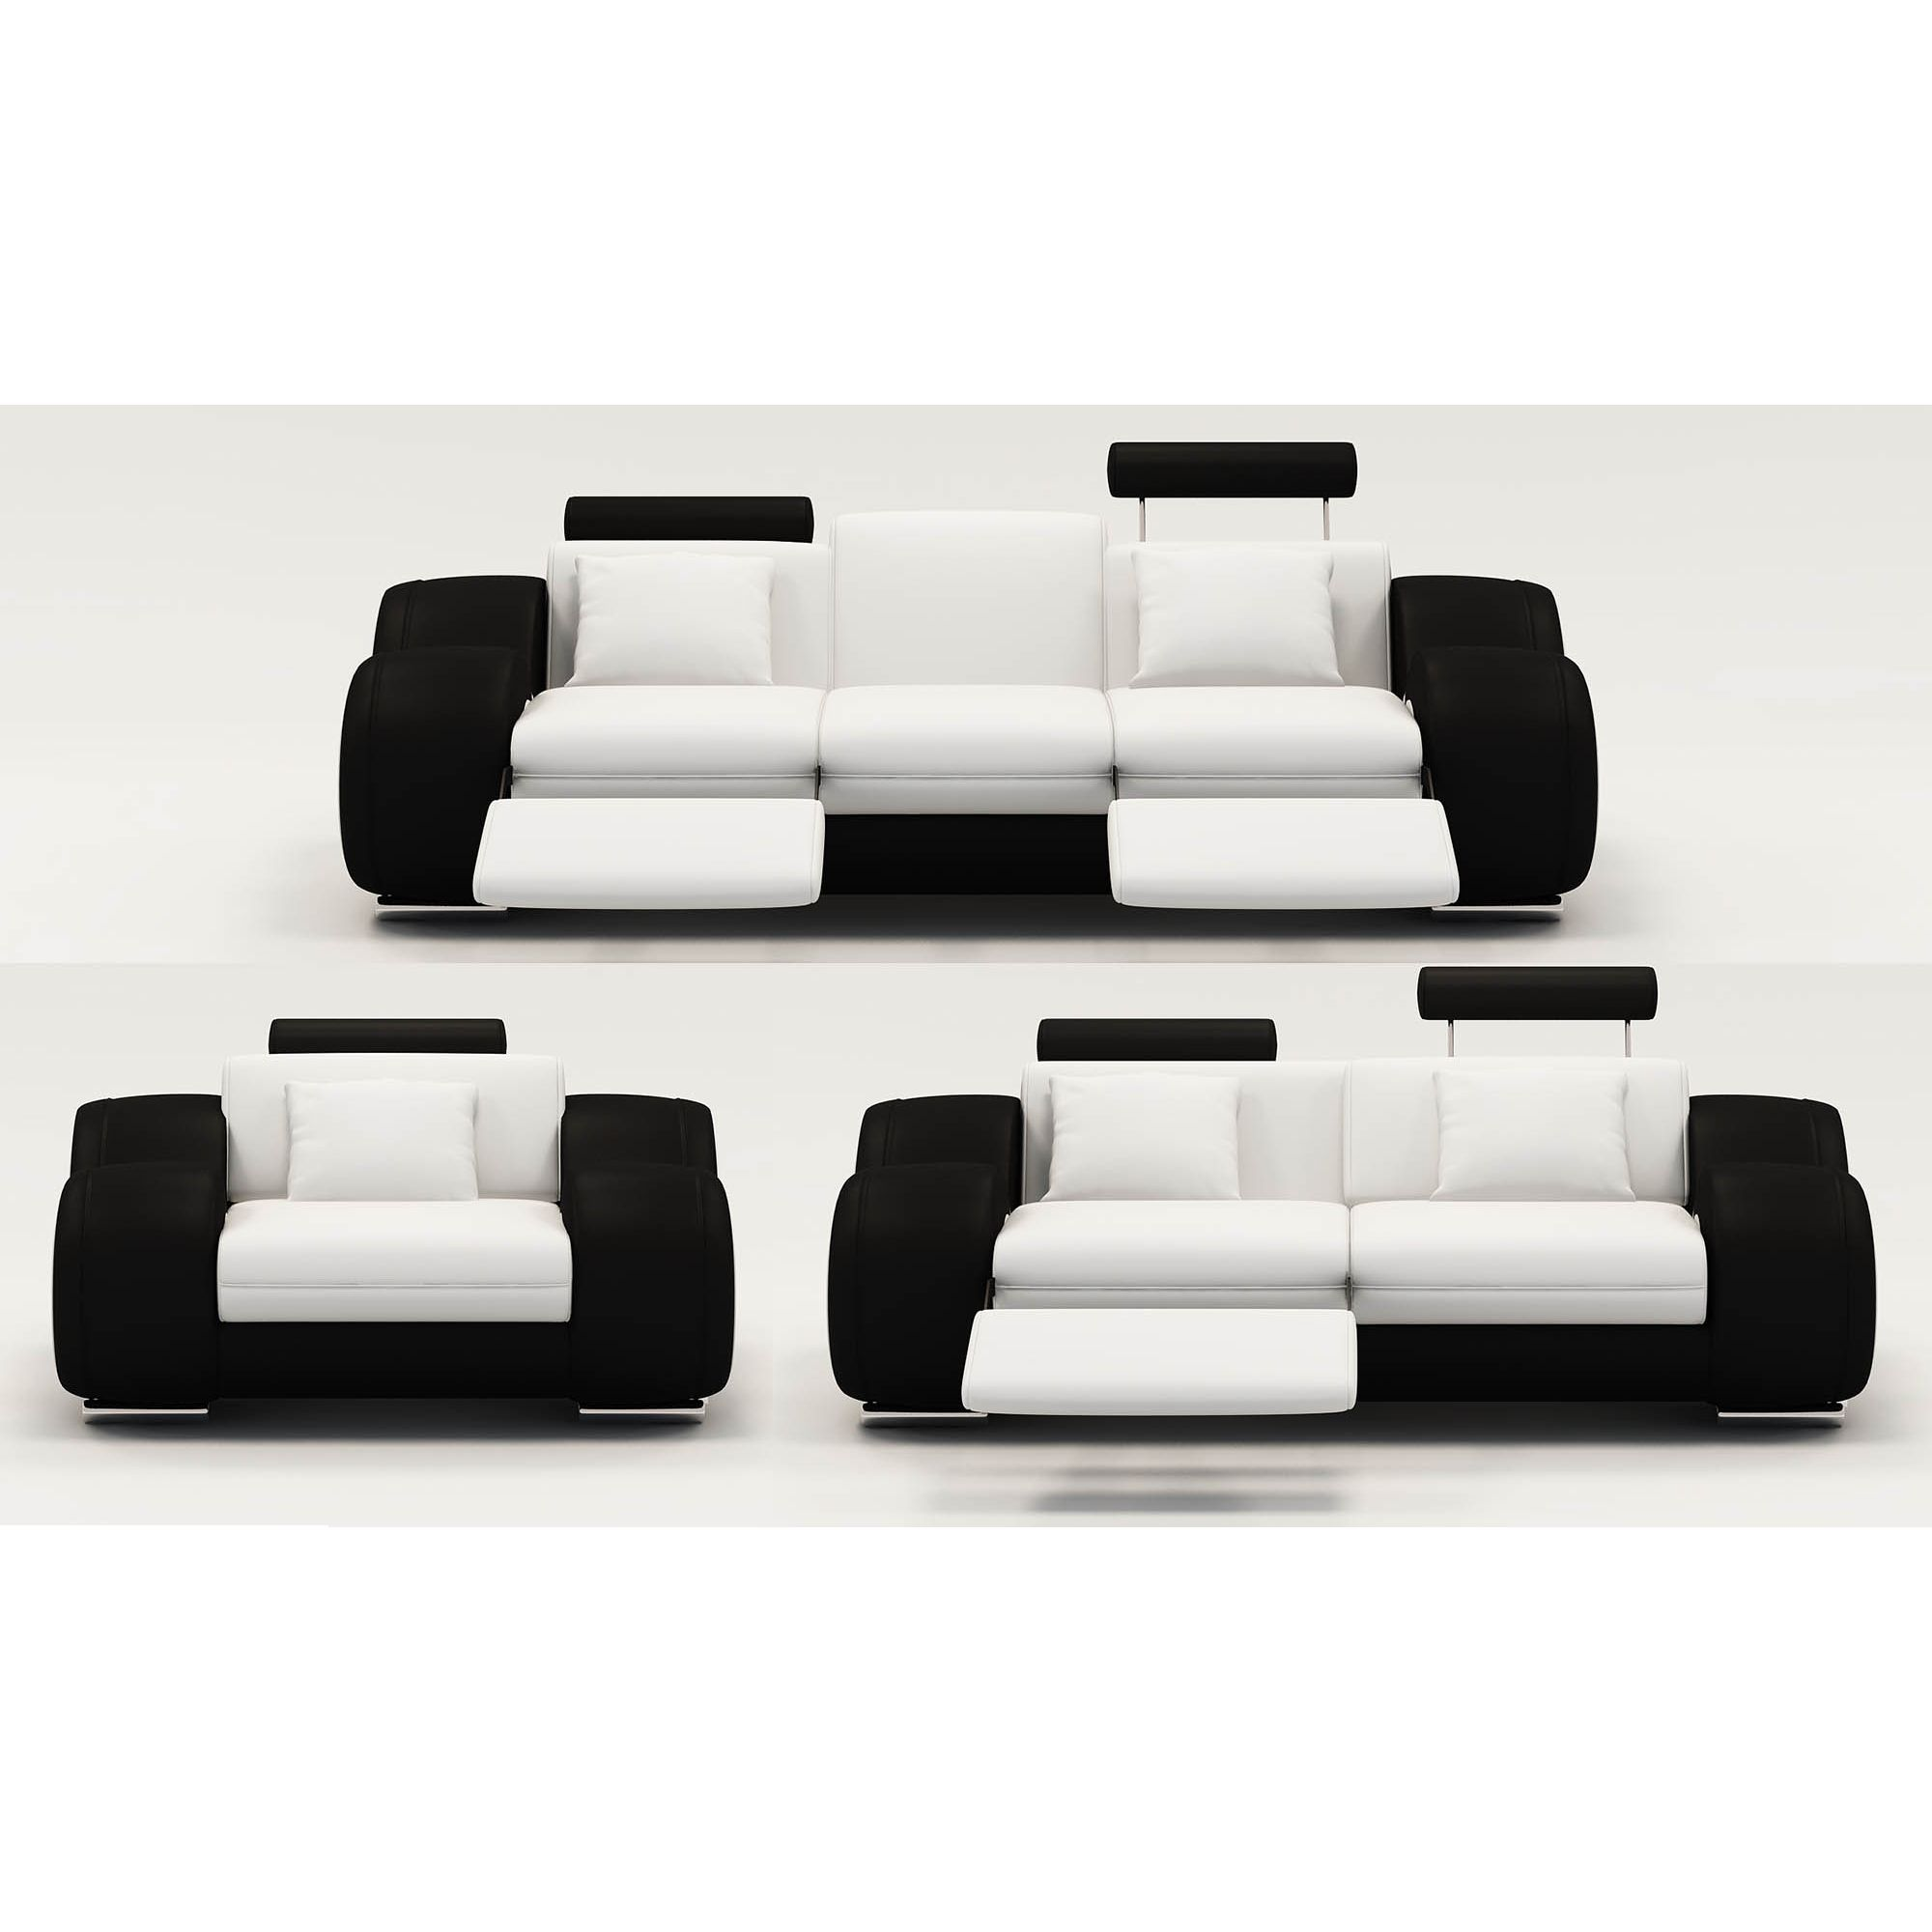 Deco in paris ensemble canape relax design 3 2 1 places for Canape noir et blanc design